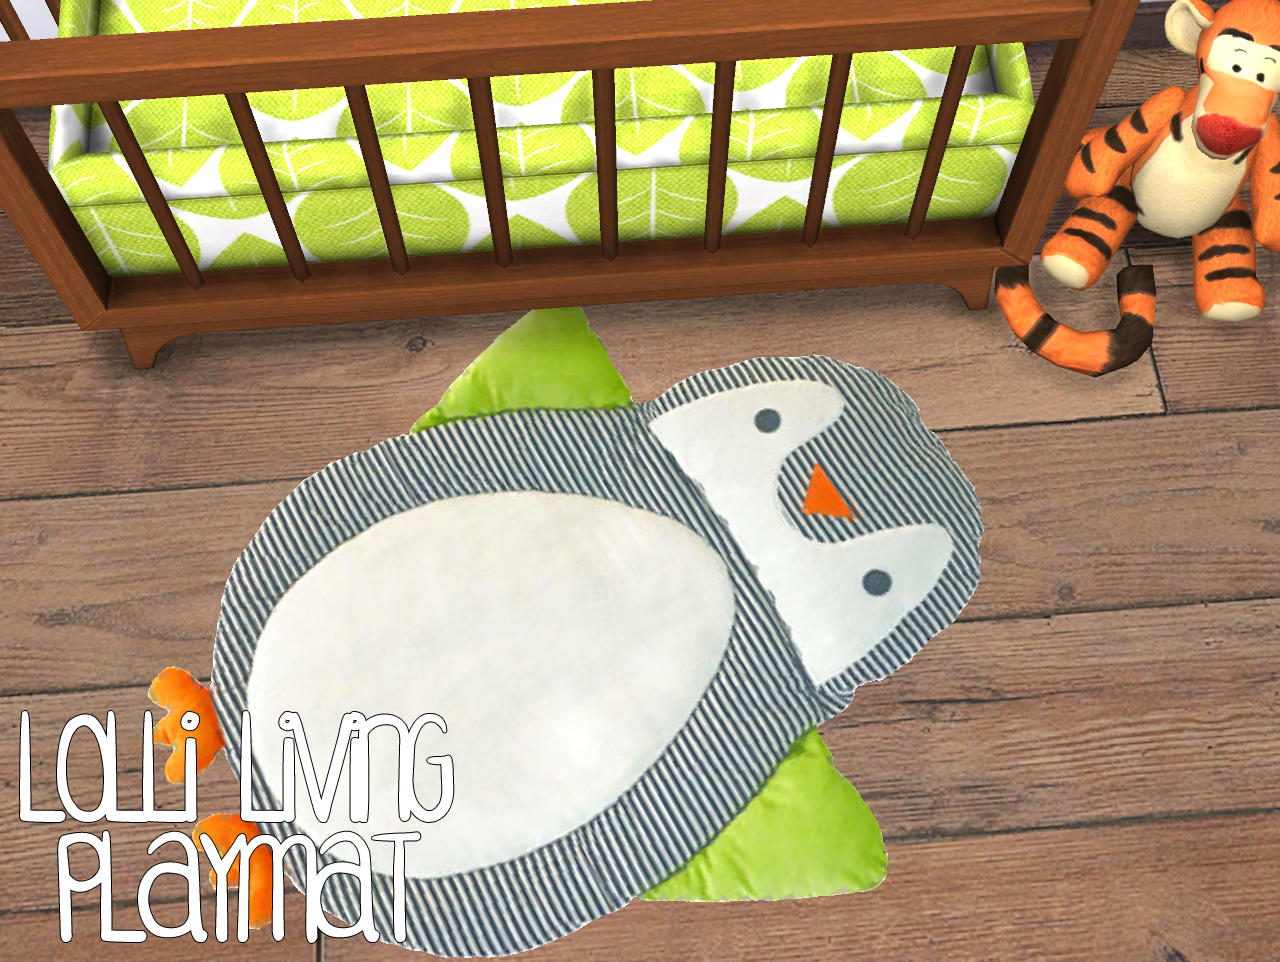 Lolli Living Play Mat by AkaiSims